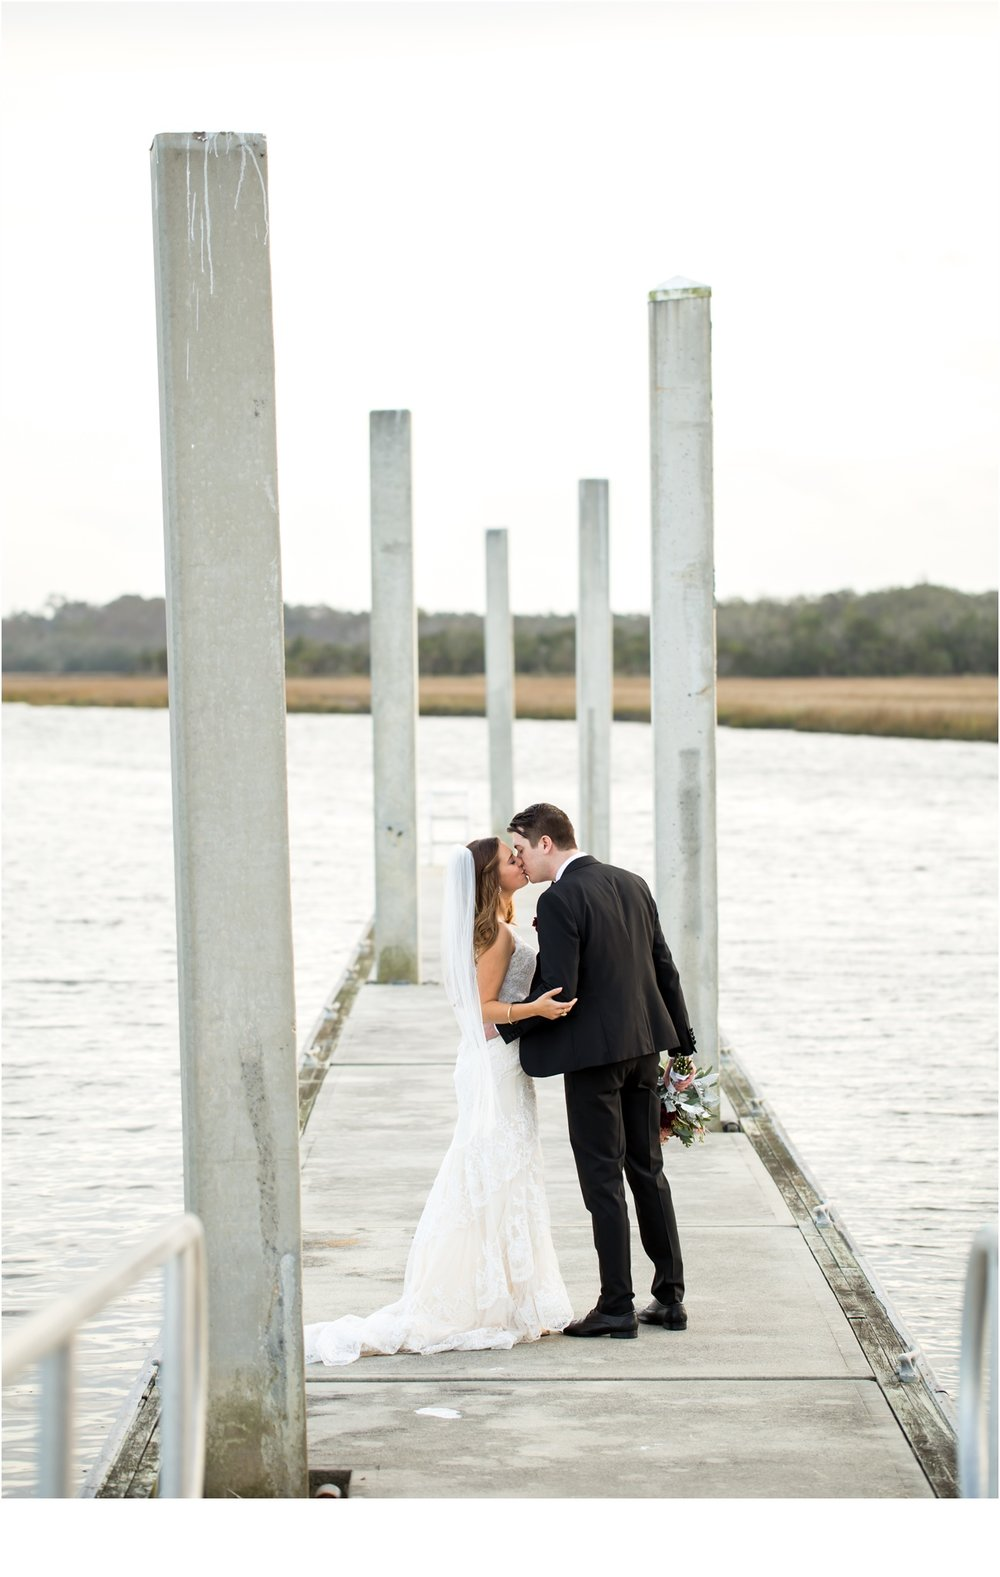 Rainey_Gregg_Photography_St._Simons_Island_Georgia_California_Wedding_Portrait_Photography_0872.jpg